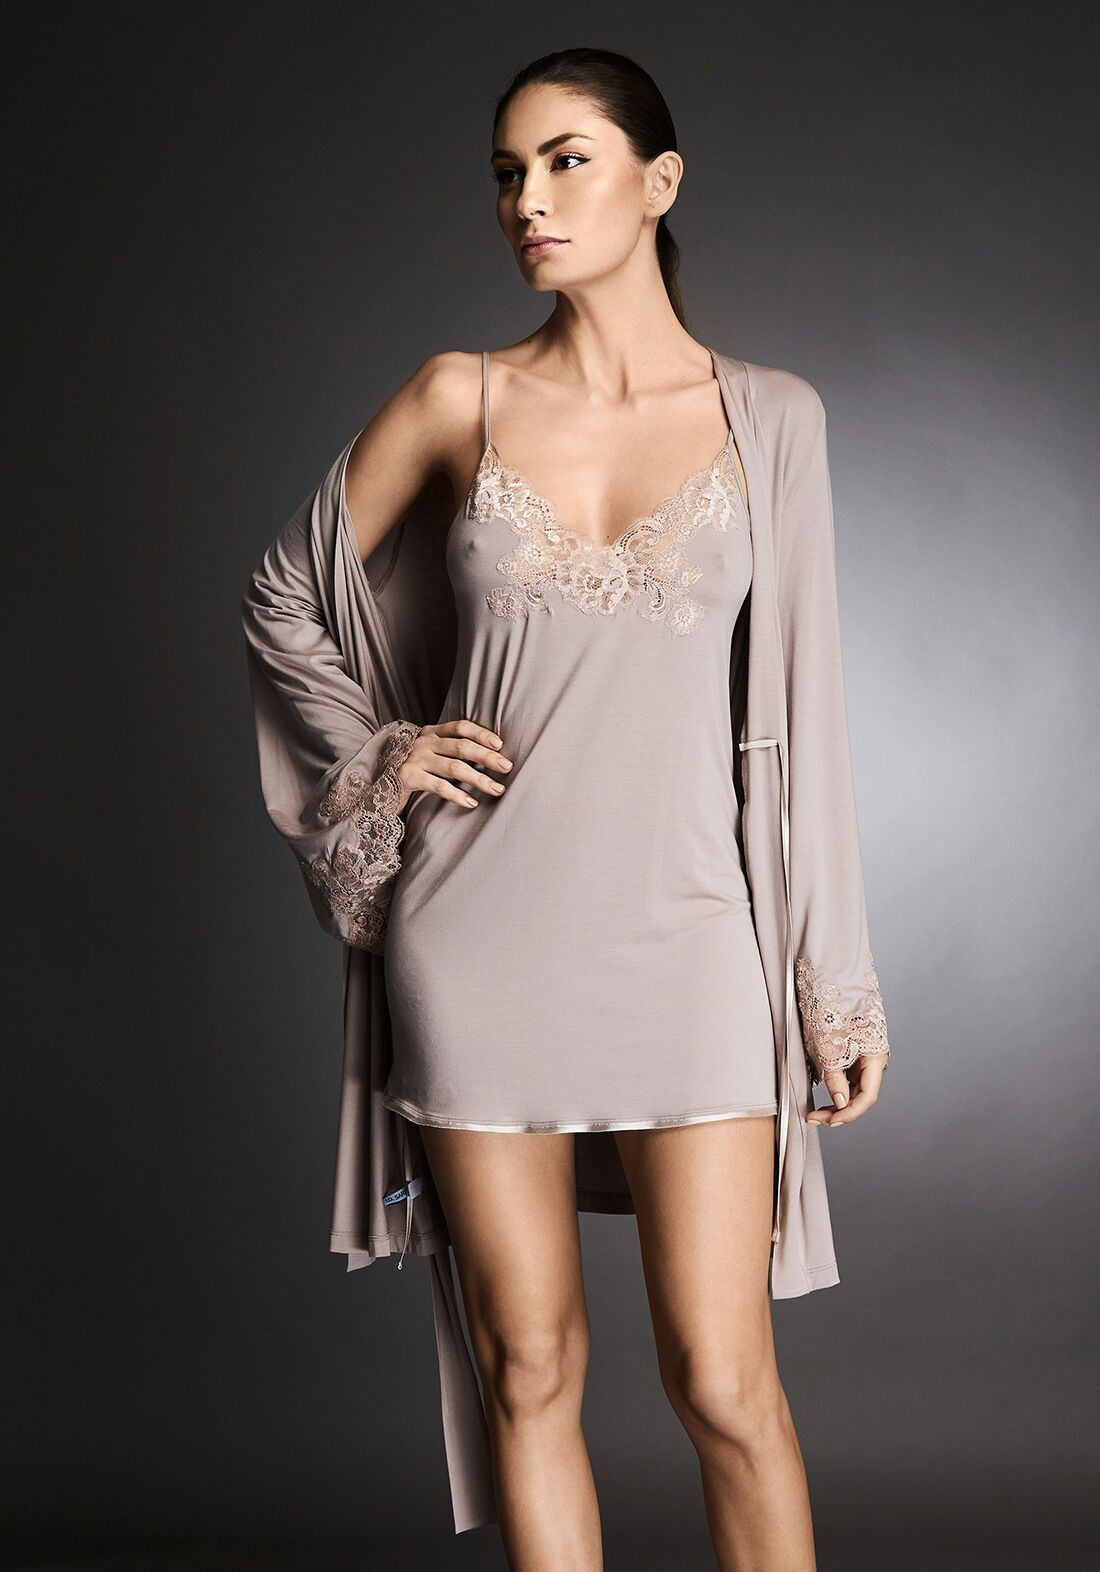 Isolde Midi Chemise in Almond Nude - I.D. Sarrieri